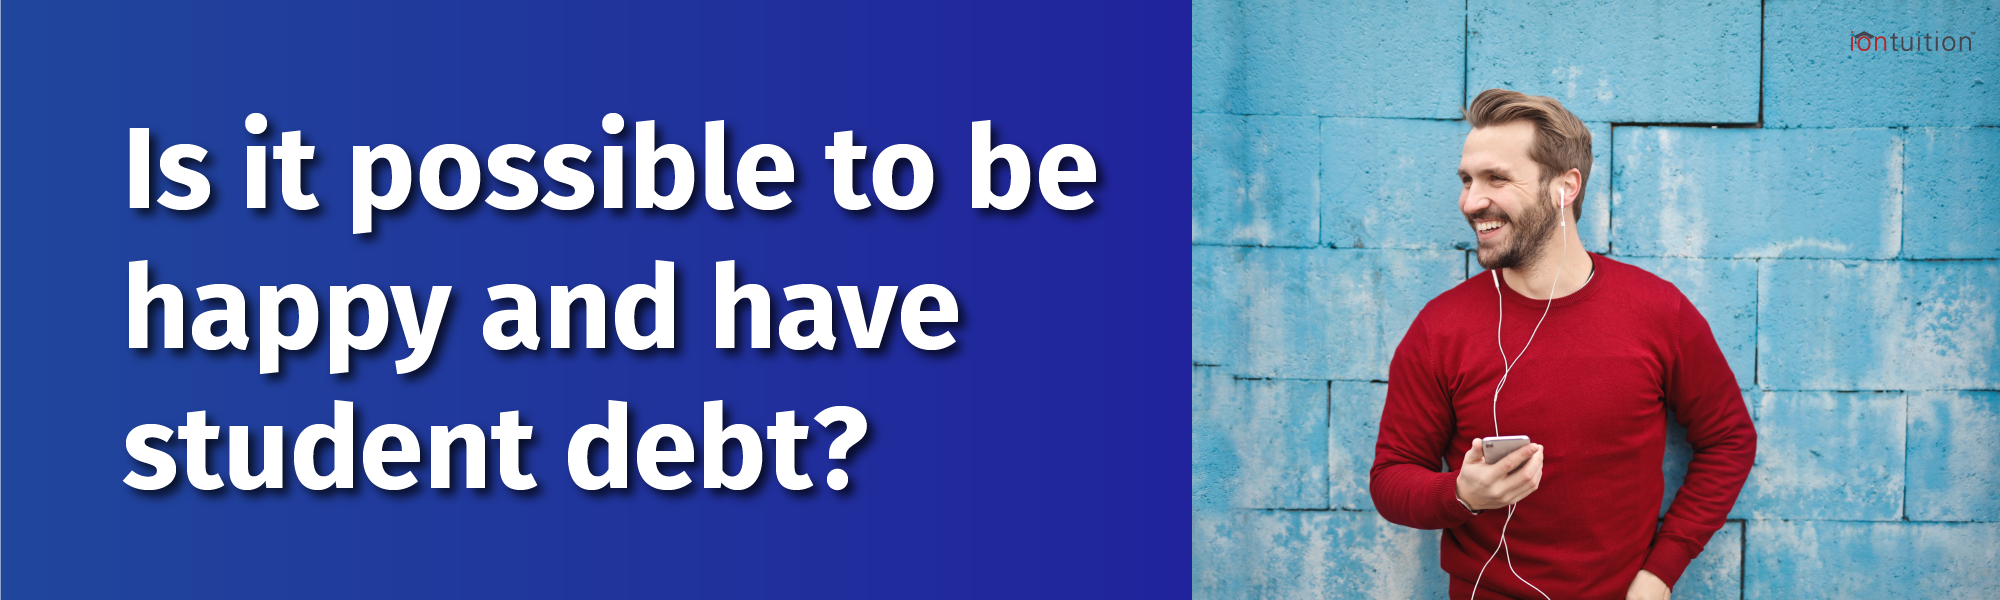 6 Ways to Keep a Positive Attitude About Student Debt